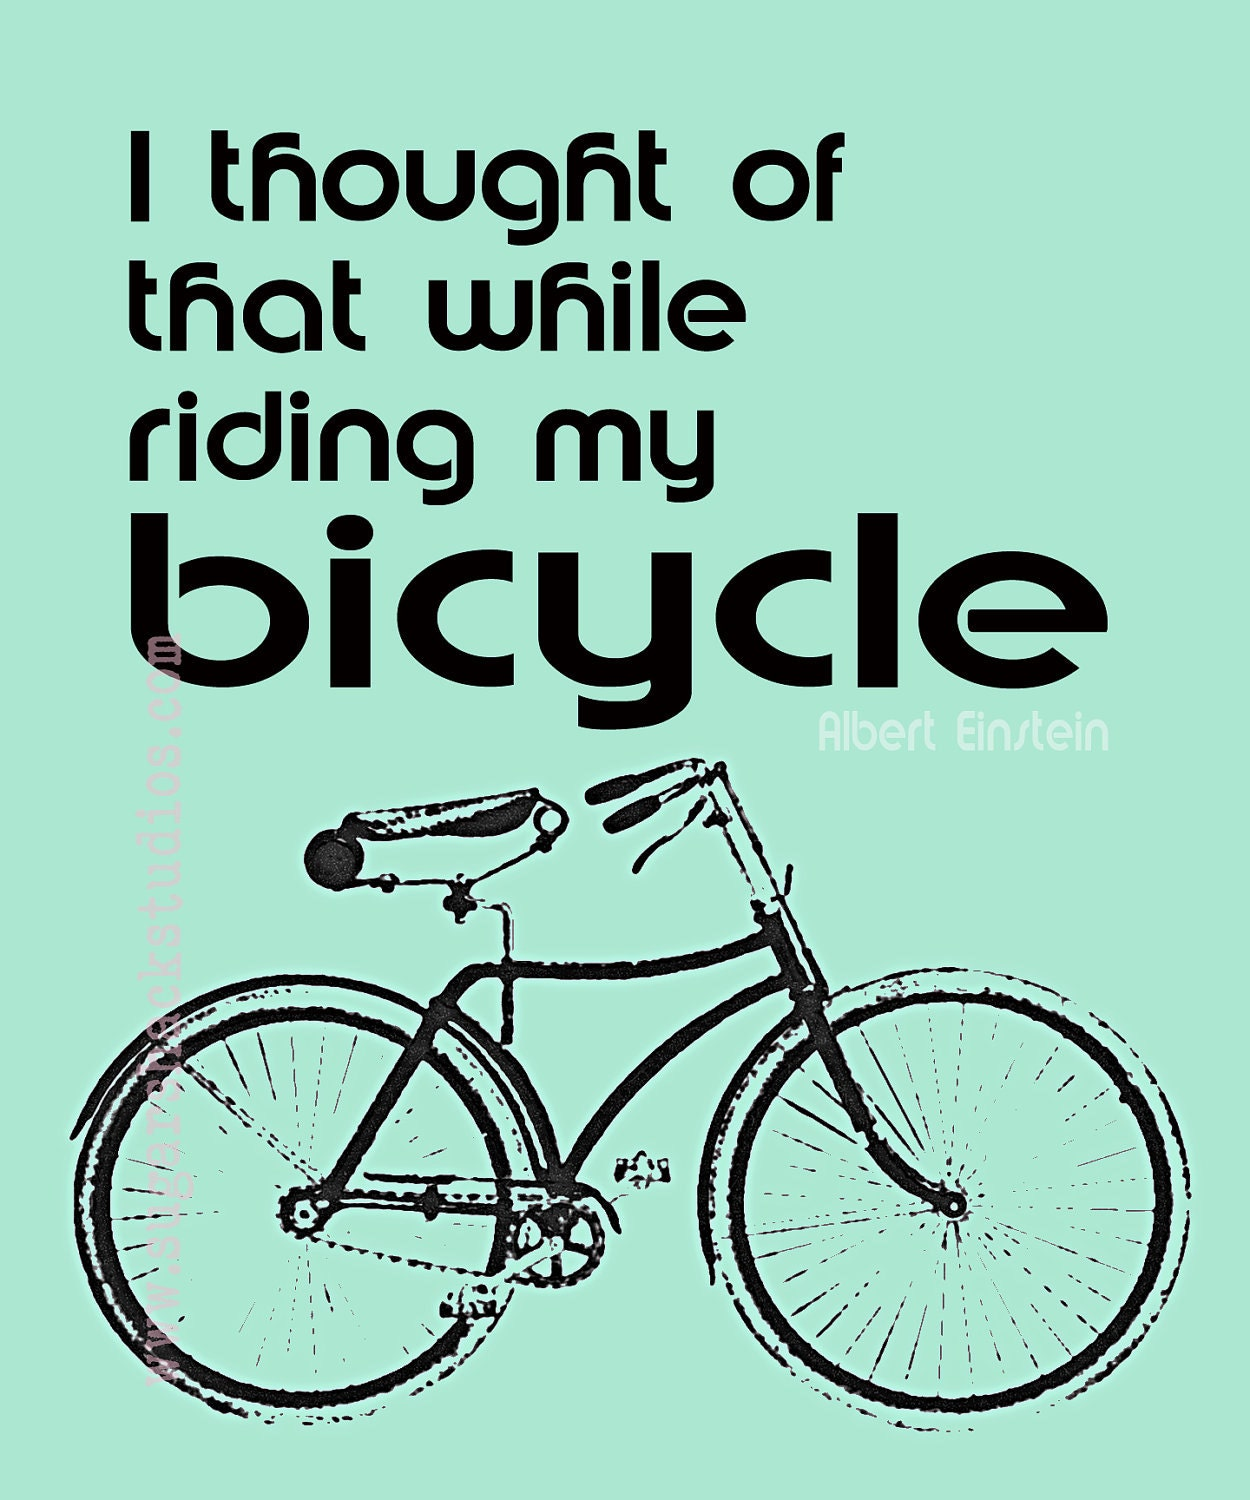 Albert Einstein Quotes Life Is Like Riding A Bicycle: Your Place To Buy And Sell All Things Handmade